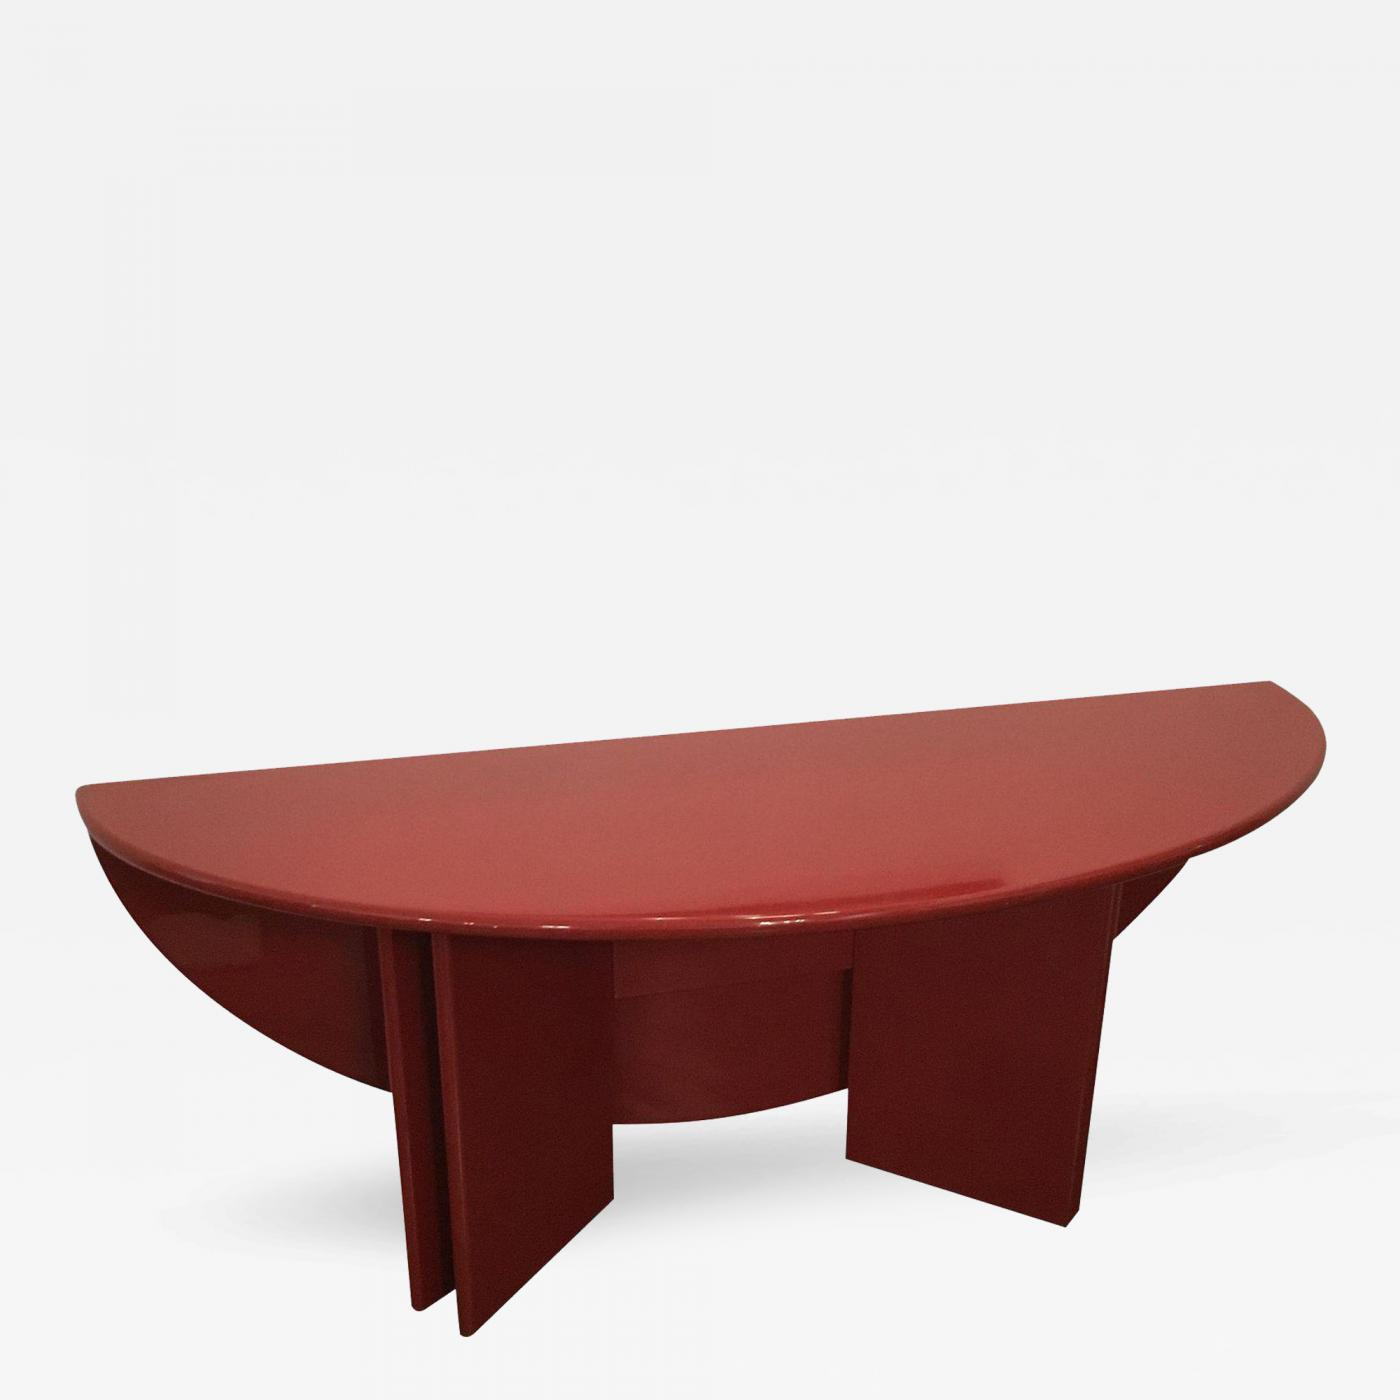 100 Modern Red Coffee Table Modern Elegant Living  : Kazuhide Takahama Italian Mid Century Modern Red Lacuqered Antella Folding Console Table 188654 333598 from 45.32.79.15 size 1400 x 1400 jpeg 67kB